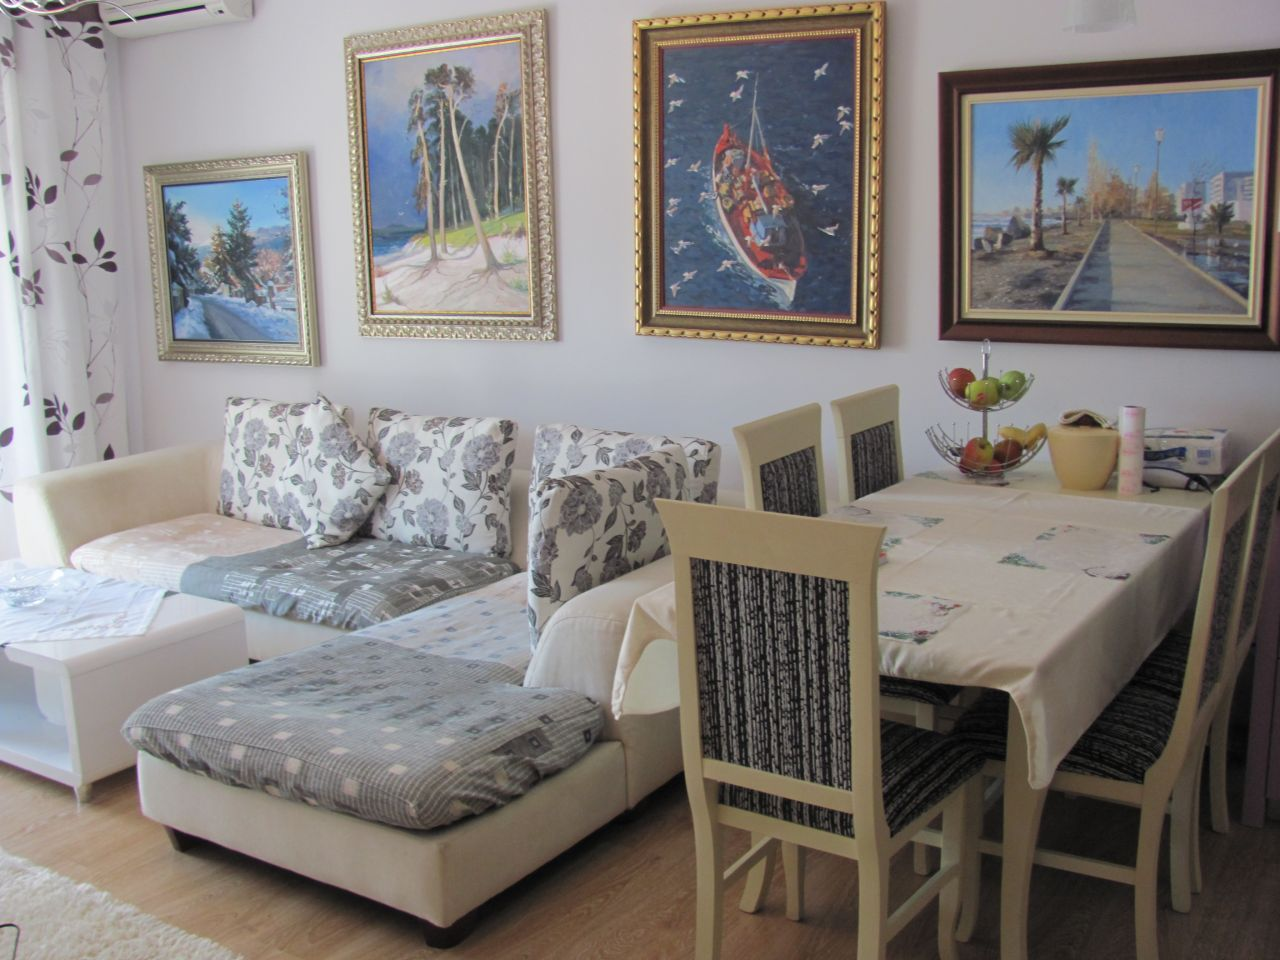 Albania Real Estate in Vlora, Albania. Flats for sale in Vlora, close to the beach.